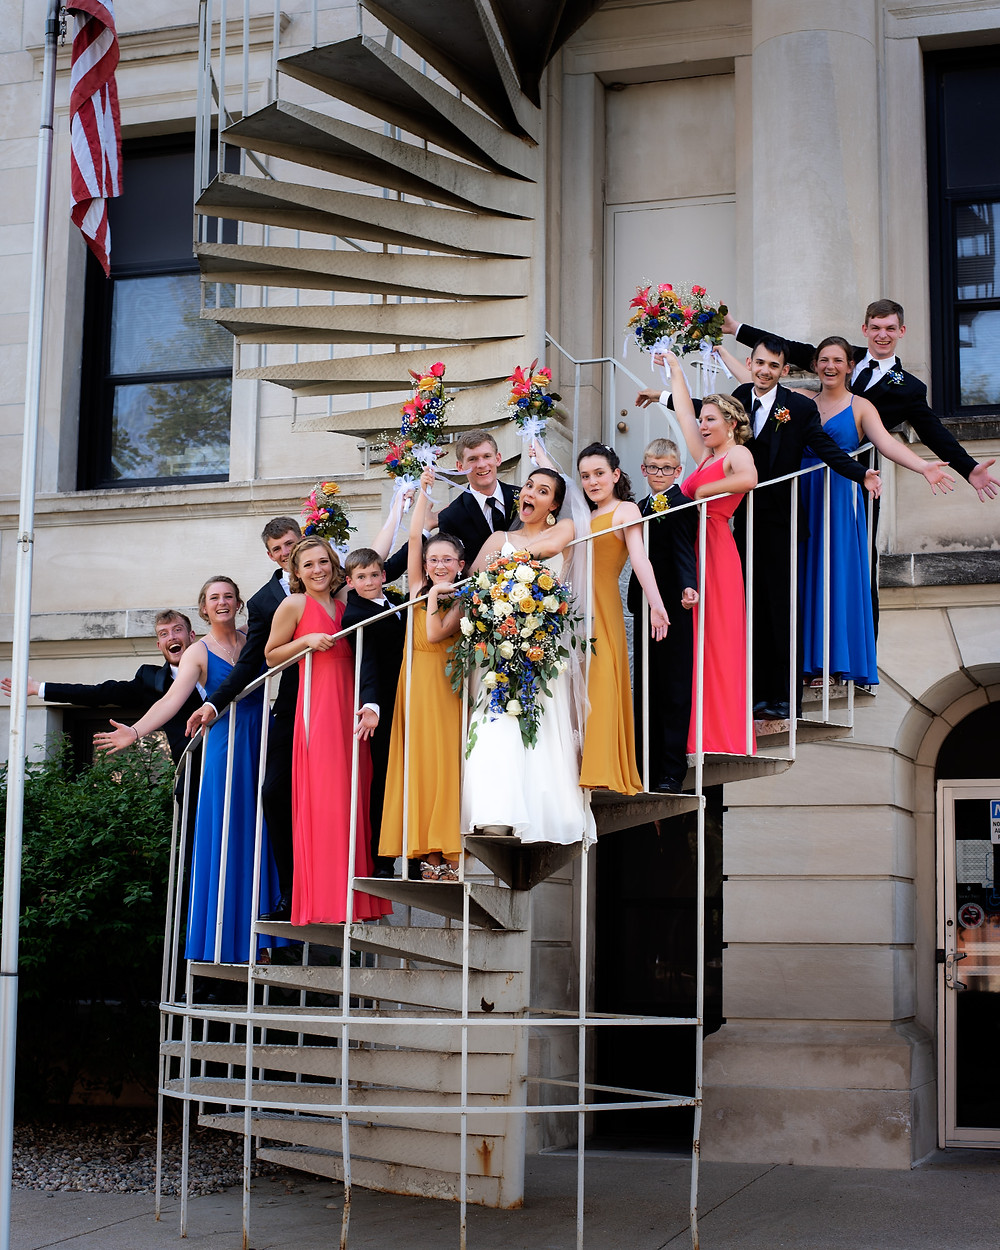 bride and groom celebrating with their wedding party on the spiral staircase in Seward, Nebraska